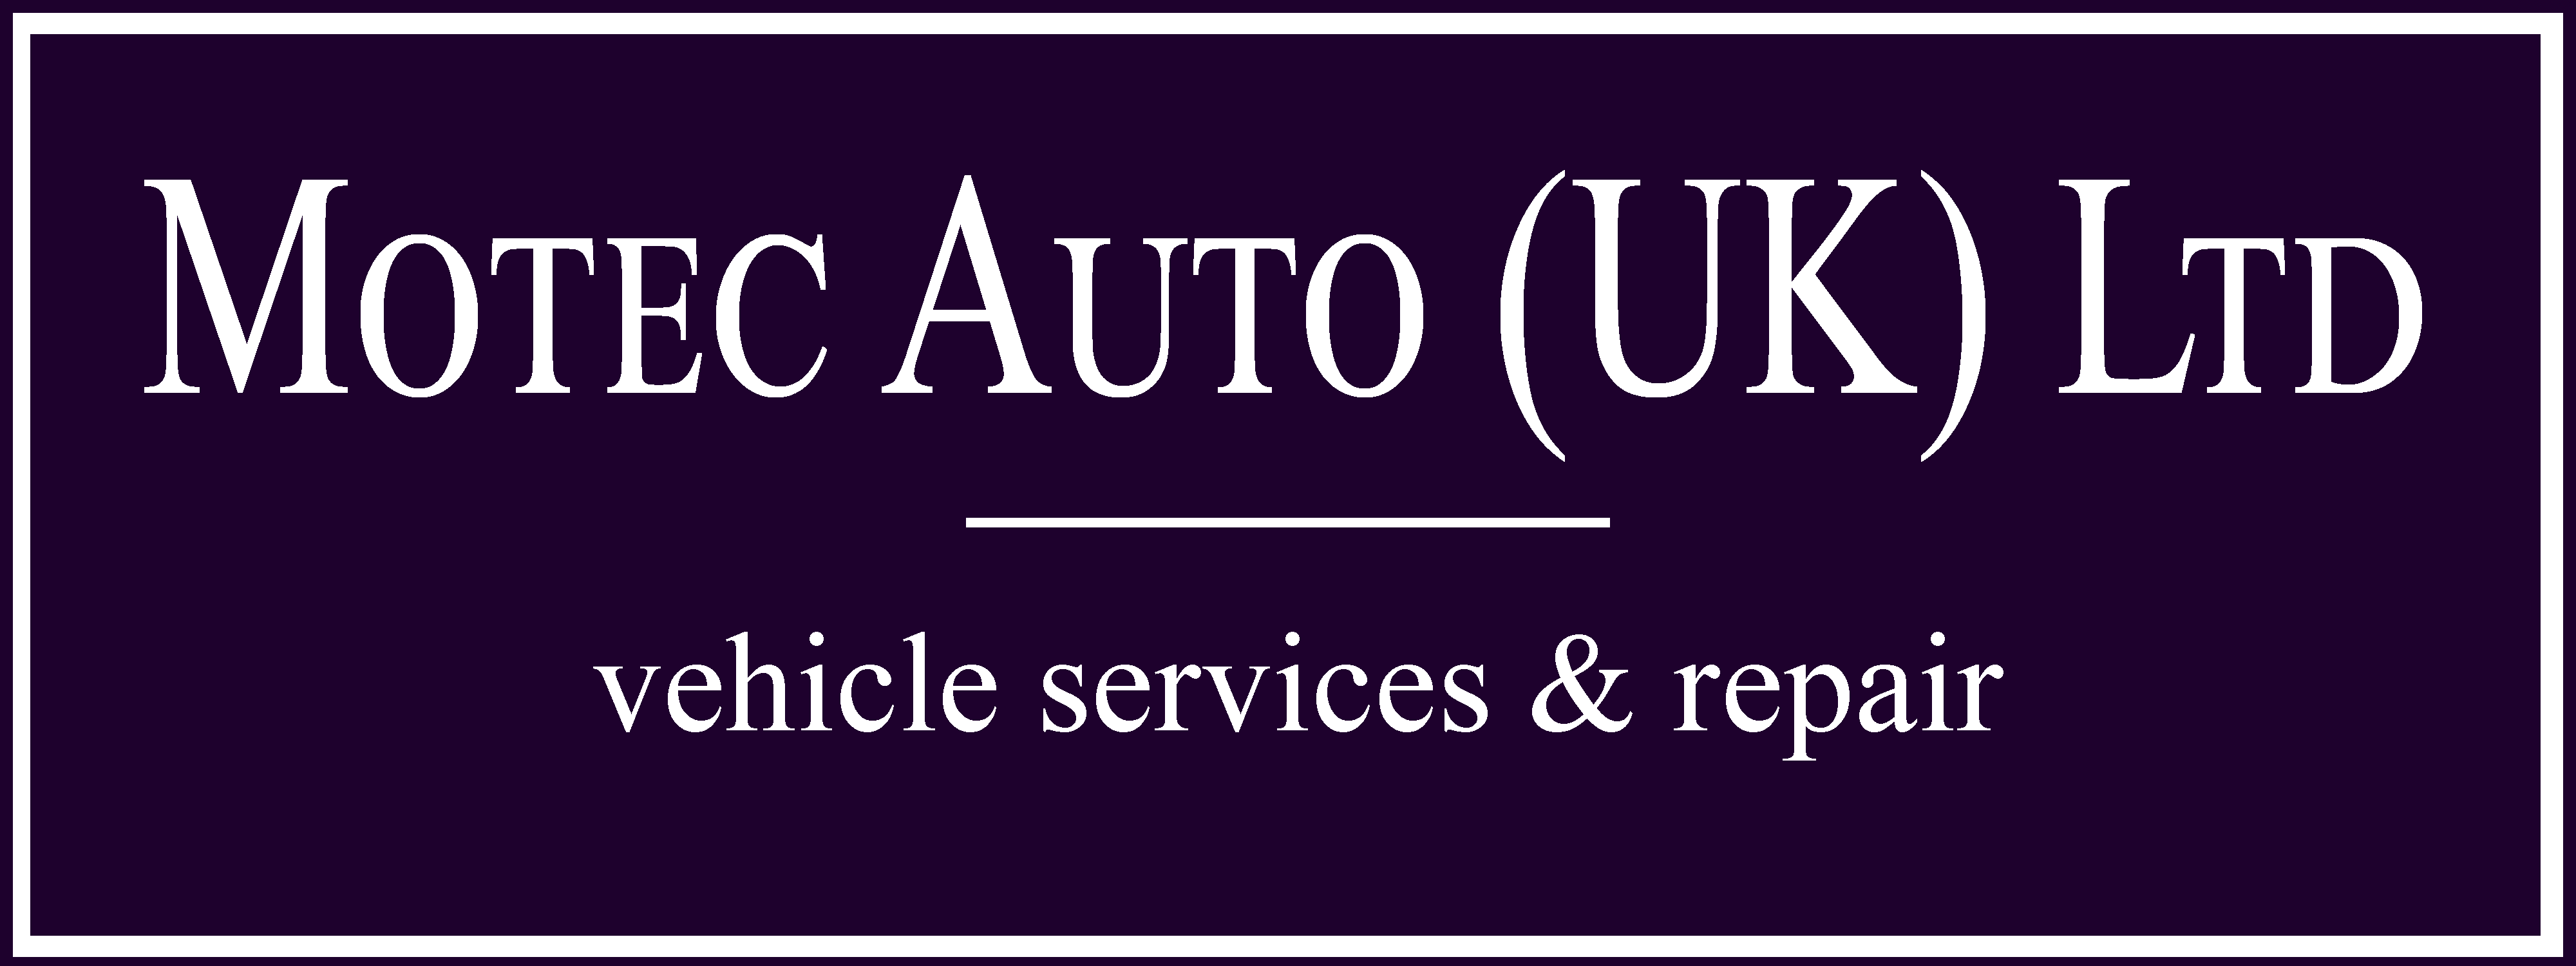 Motec Auto (Uk) Ltd